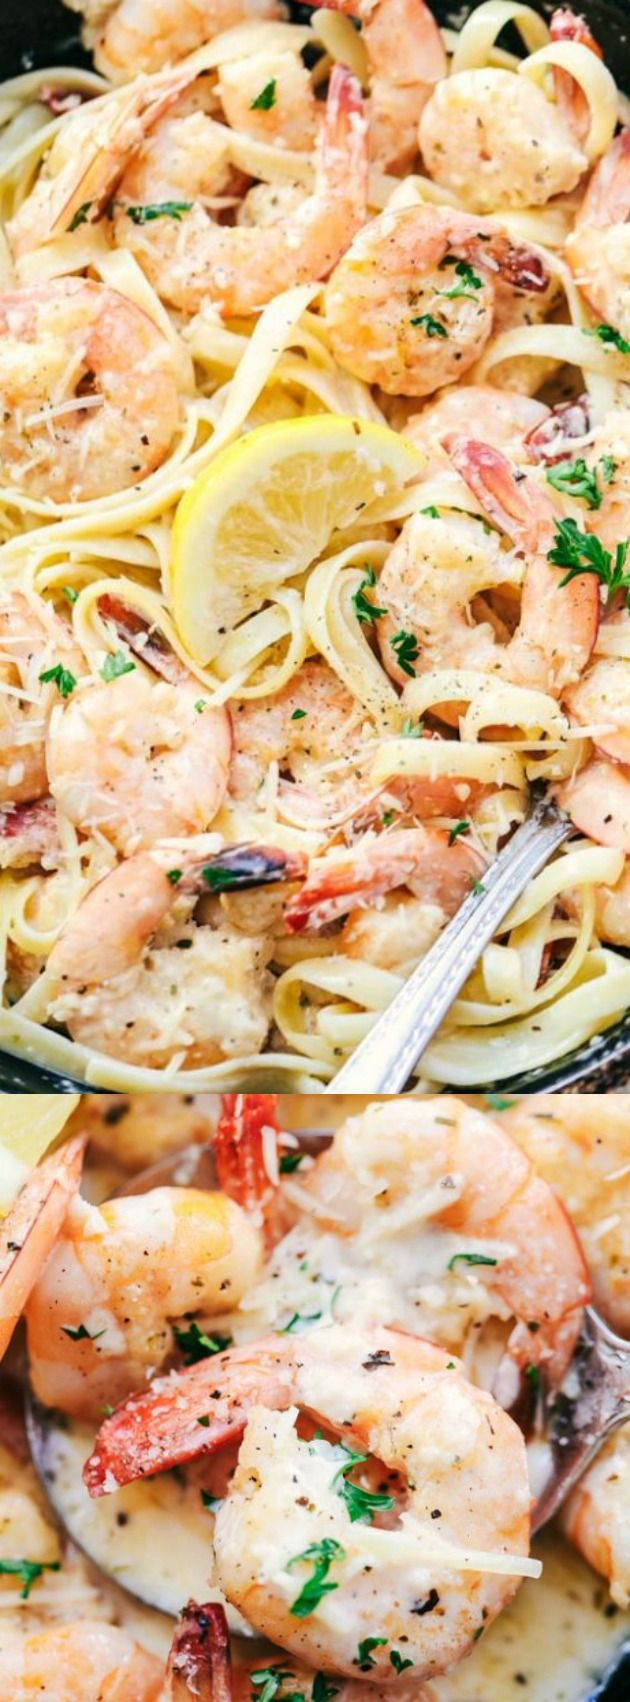 This Creamy Parmesan Garlic Shrimp Pasta from The Recipe Critic is the perfect quick and easy meal for busy nights! Juicy shrimp get coated in the very best creamy garlic sauce and taste wonderful tossed with fresh pasta!